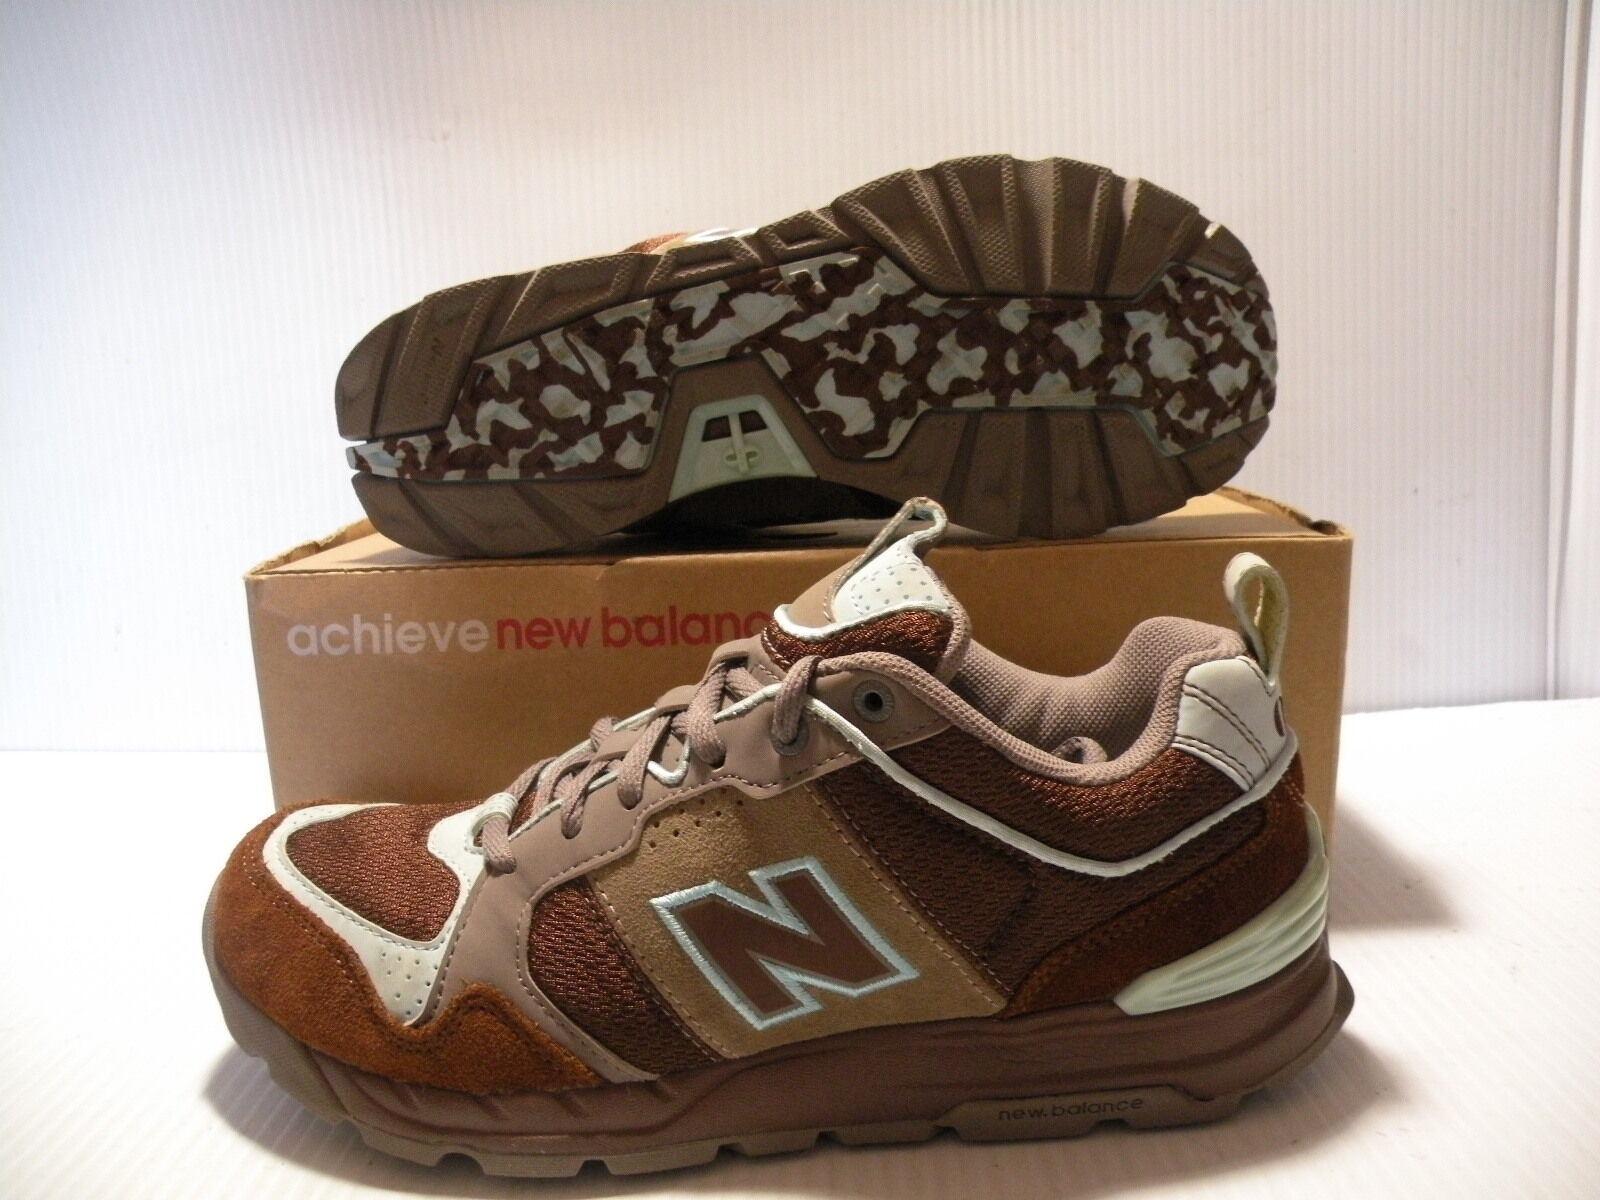 NEW BALANCE 016  IDENTITY SNEAKERS WOMEN SHOES BROWN/BLUE W016BTC SIZE 8.5 NEW